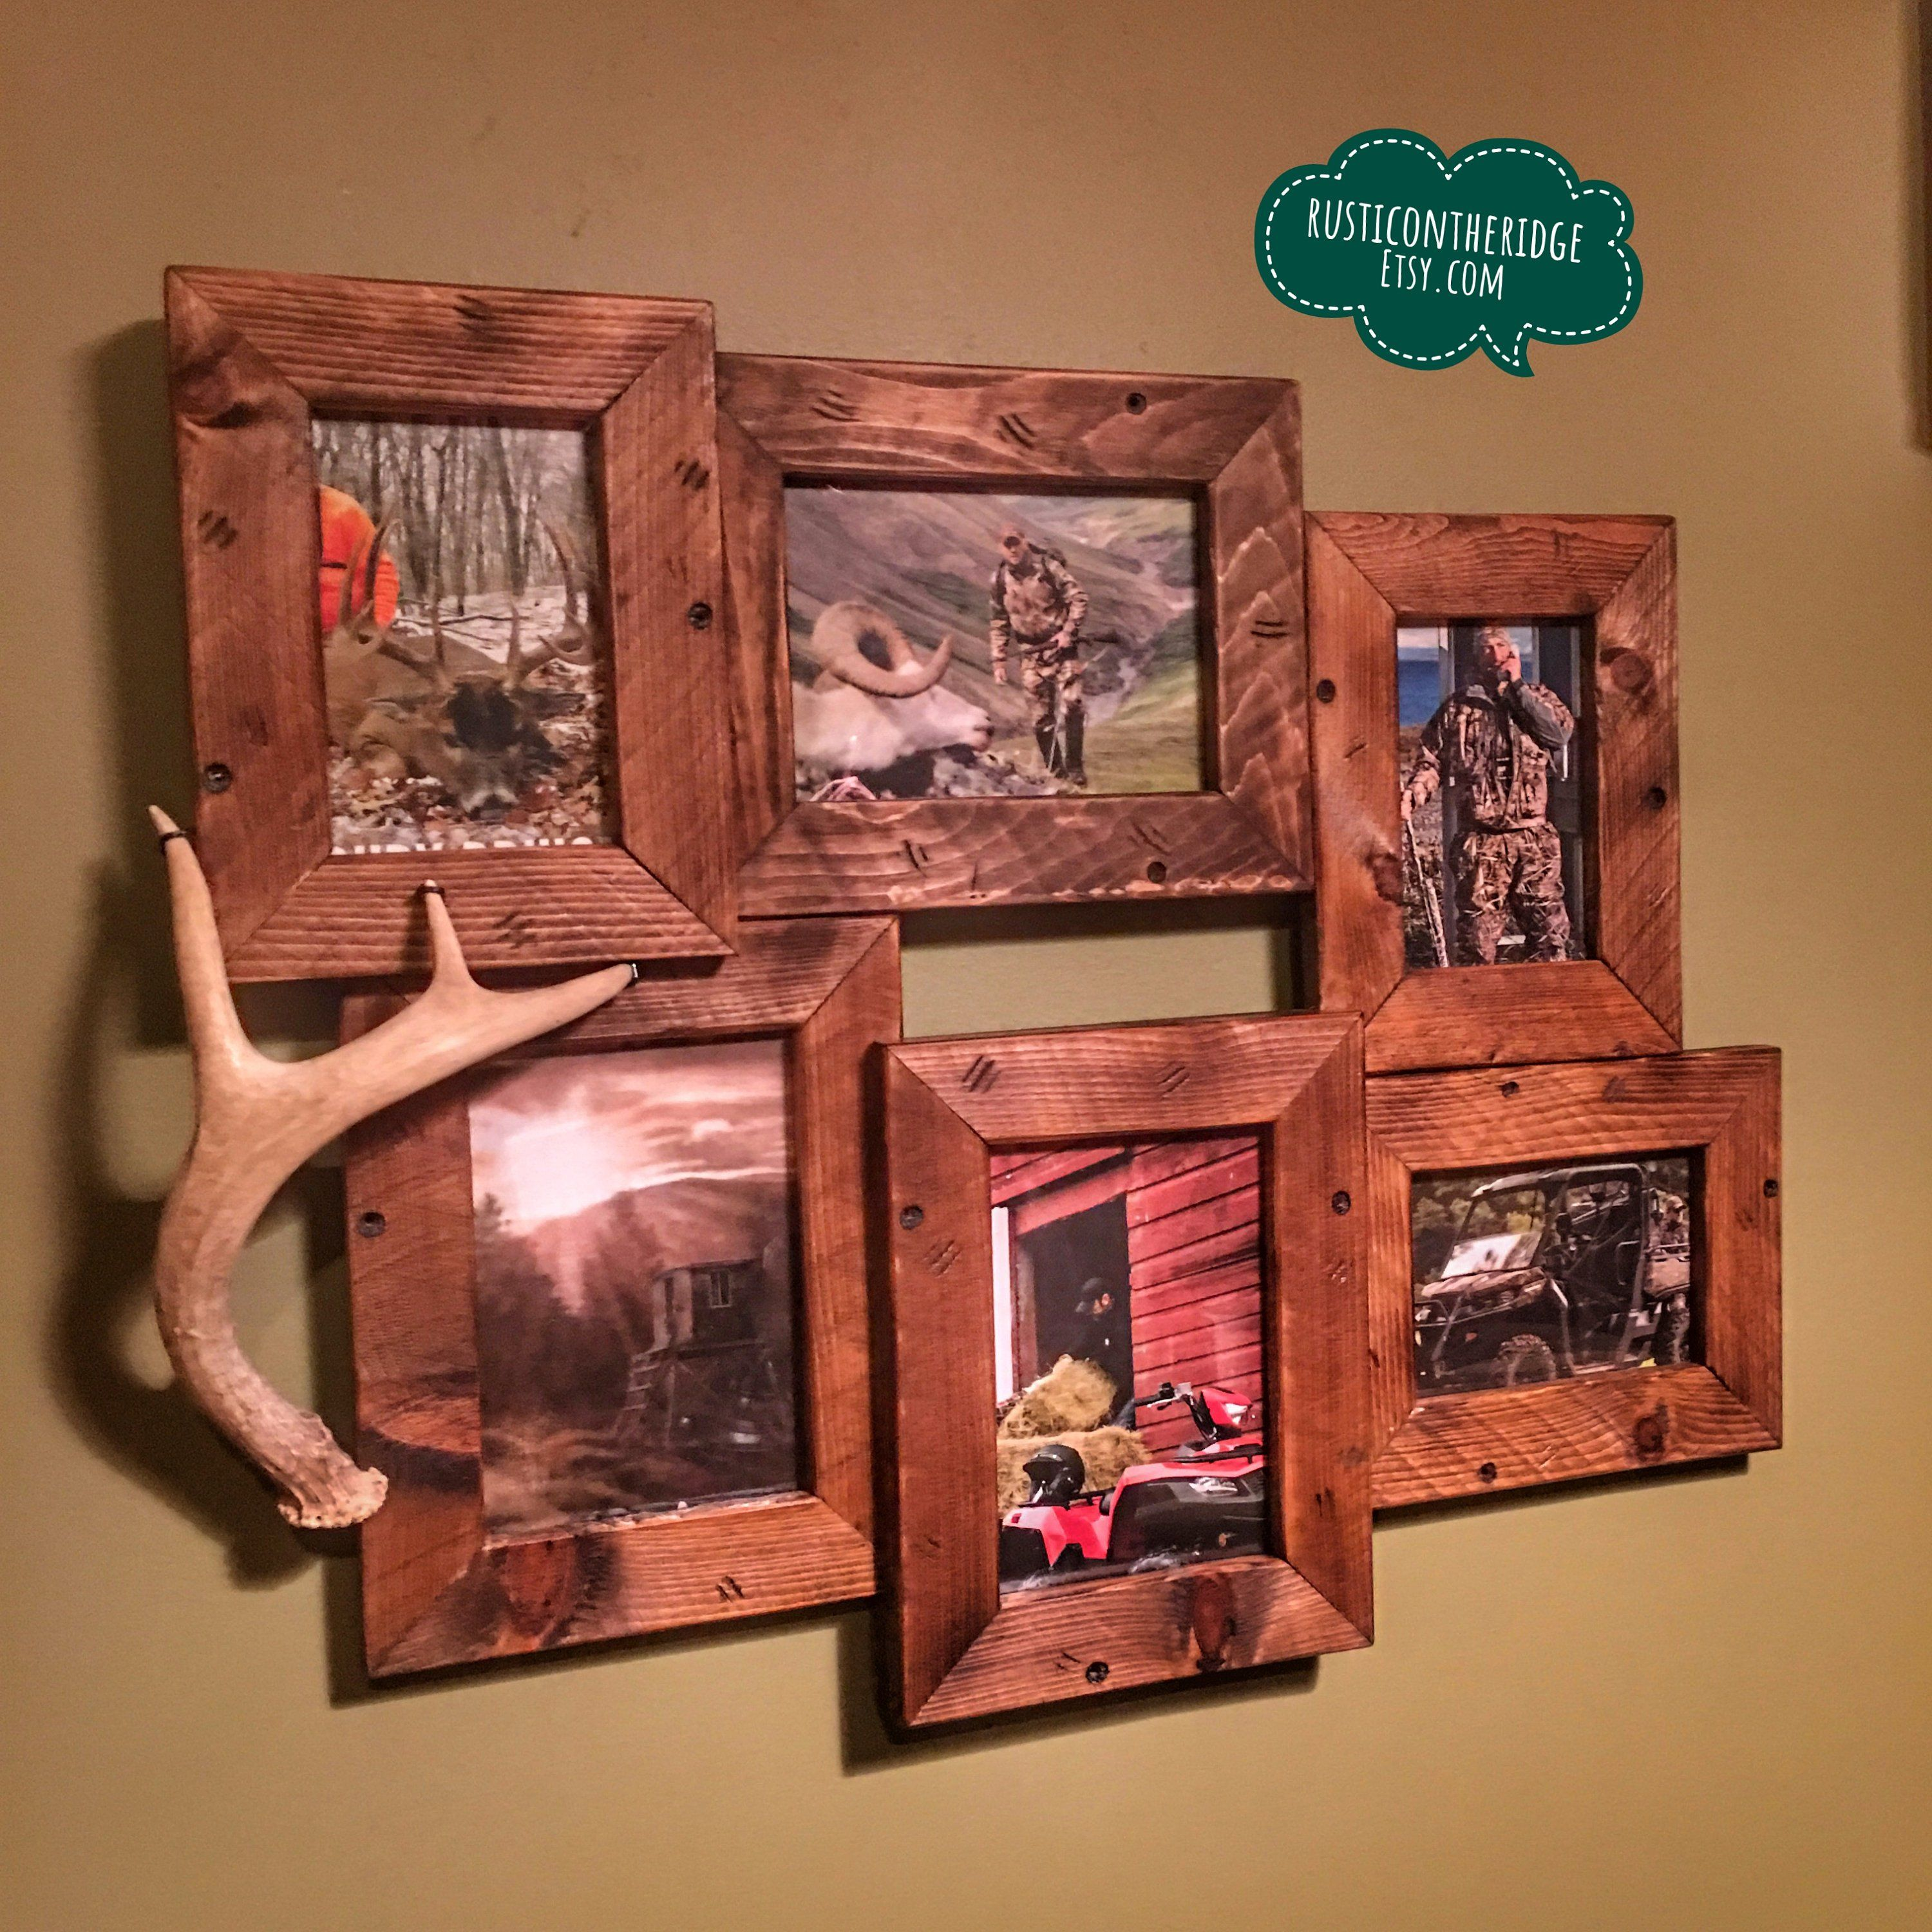 Brown Picture Frame Set Up Cycled Vintage Rustic Shabby Chic Distressed Wood Photo Gallery Collection Country Western Man Cave Home Decor